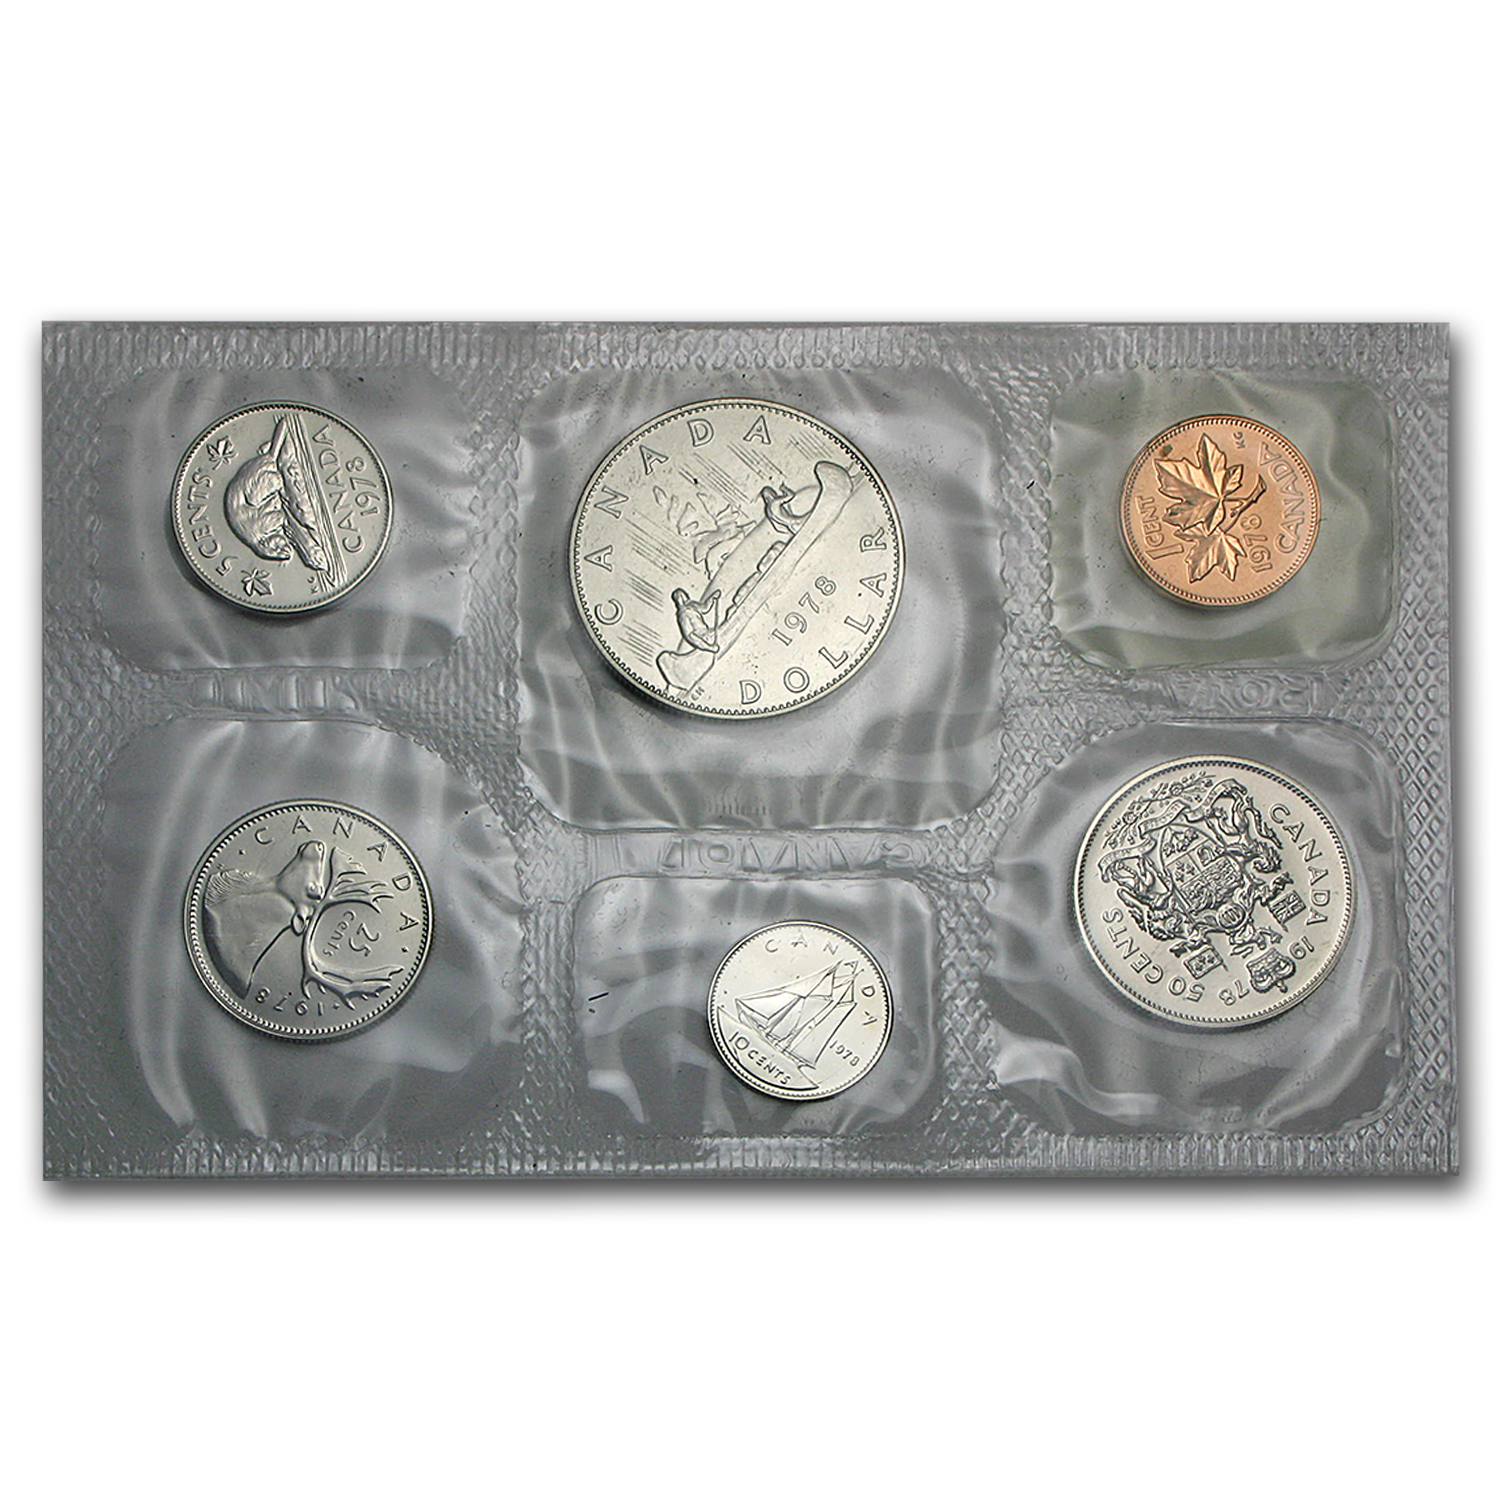 1978 Canada Proof Like 6 Piece Coin Set